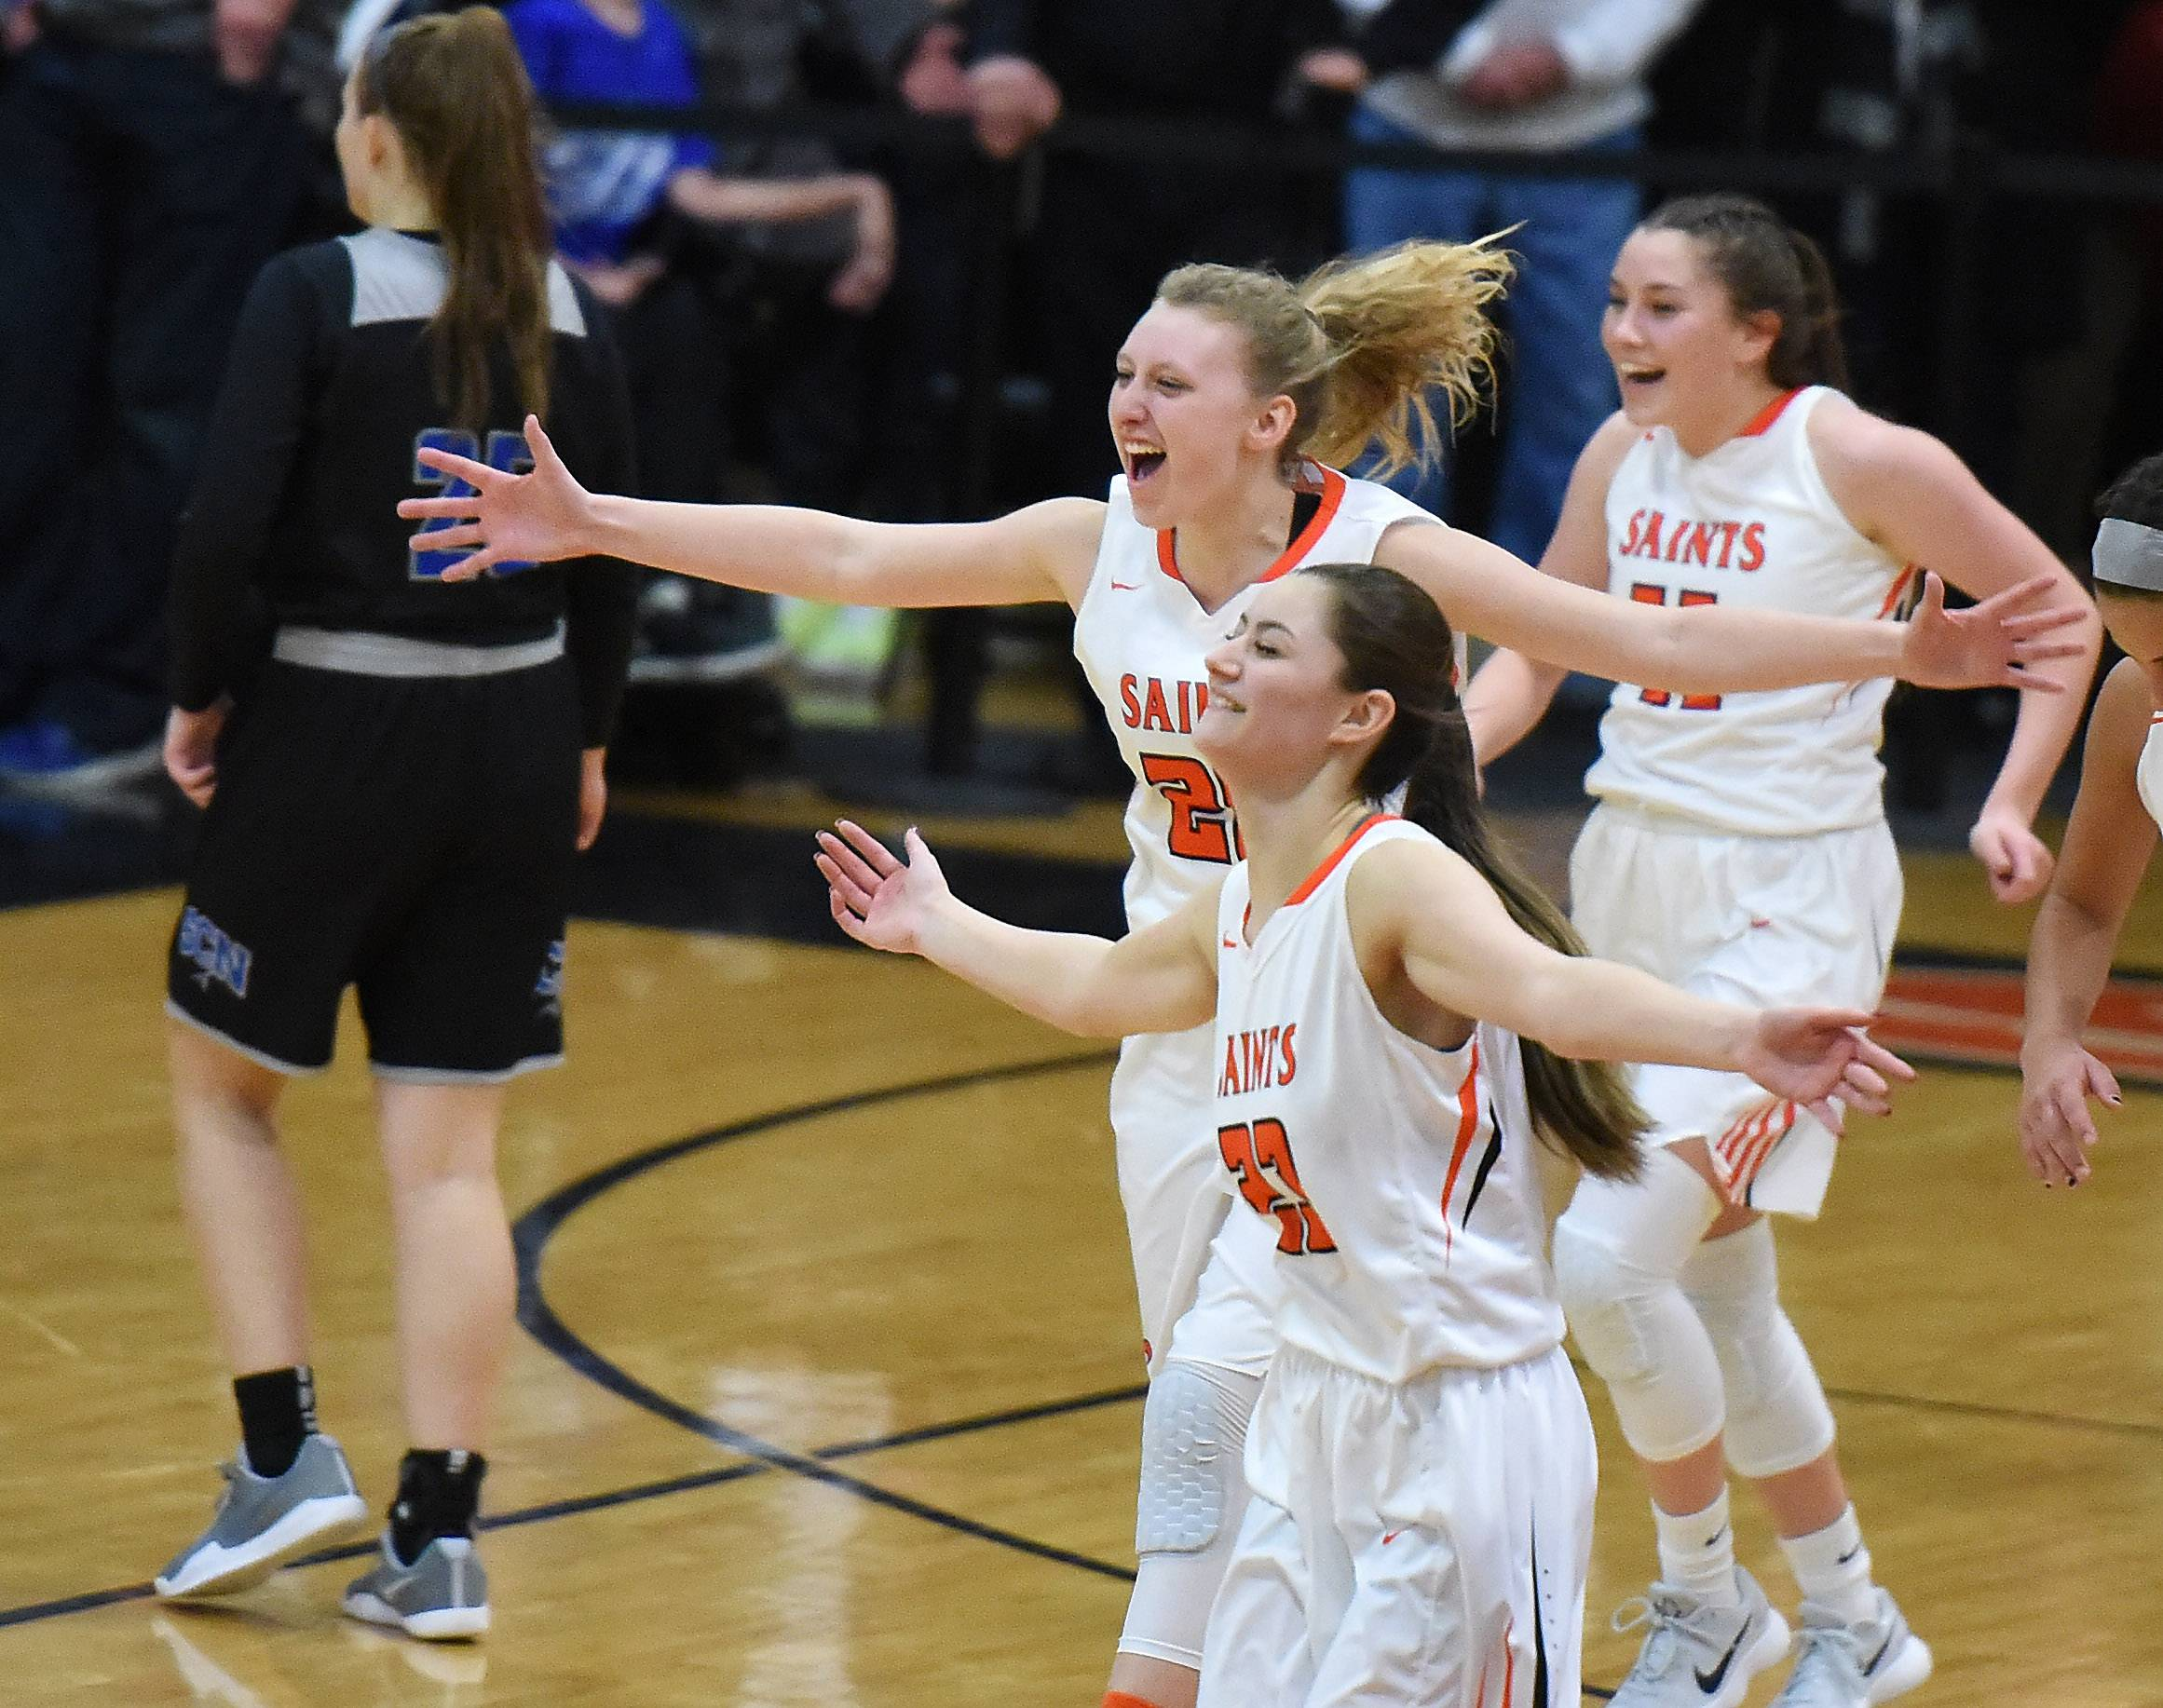 St. Charles East rallies past St. Charles North